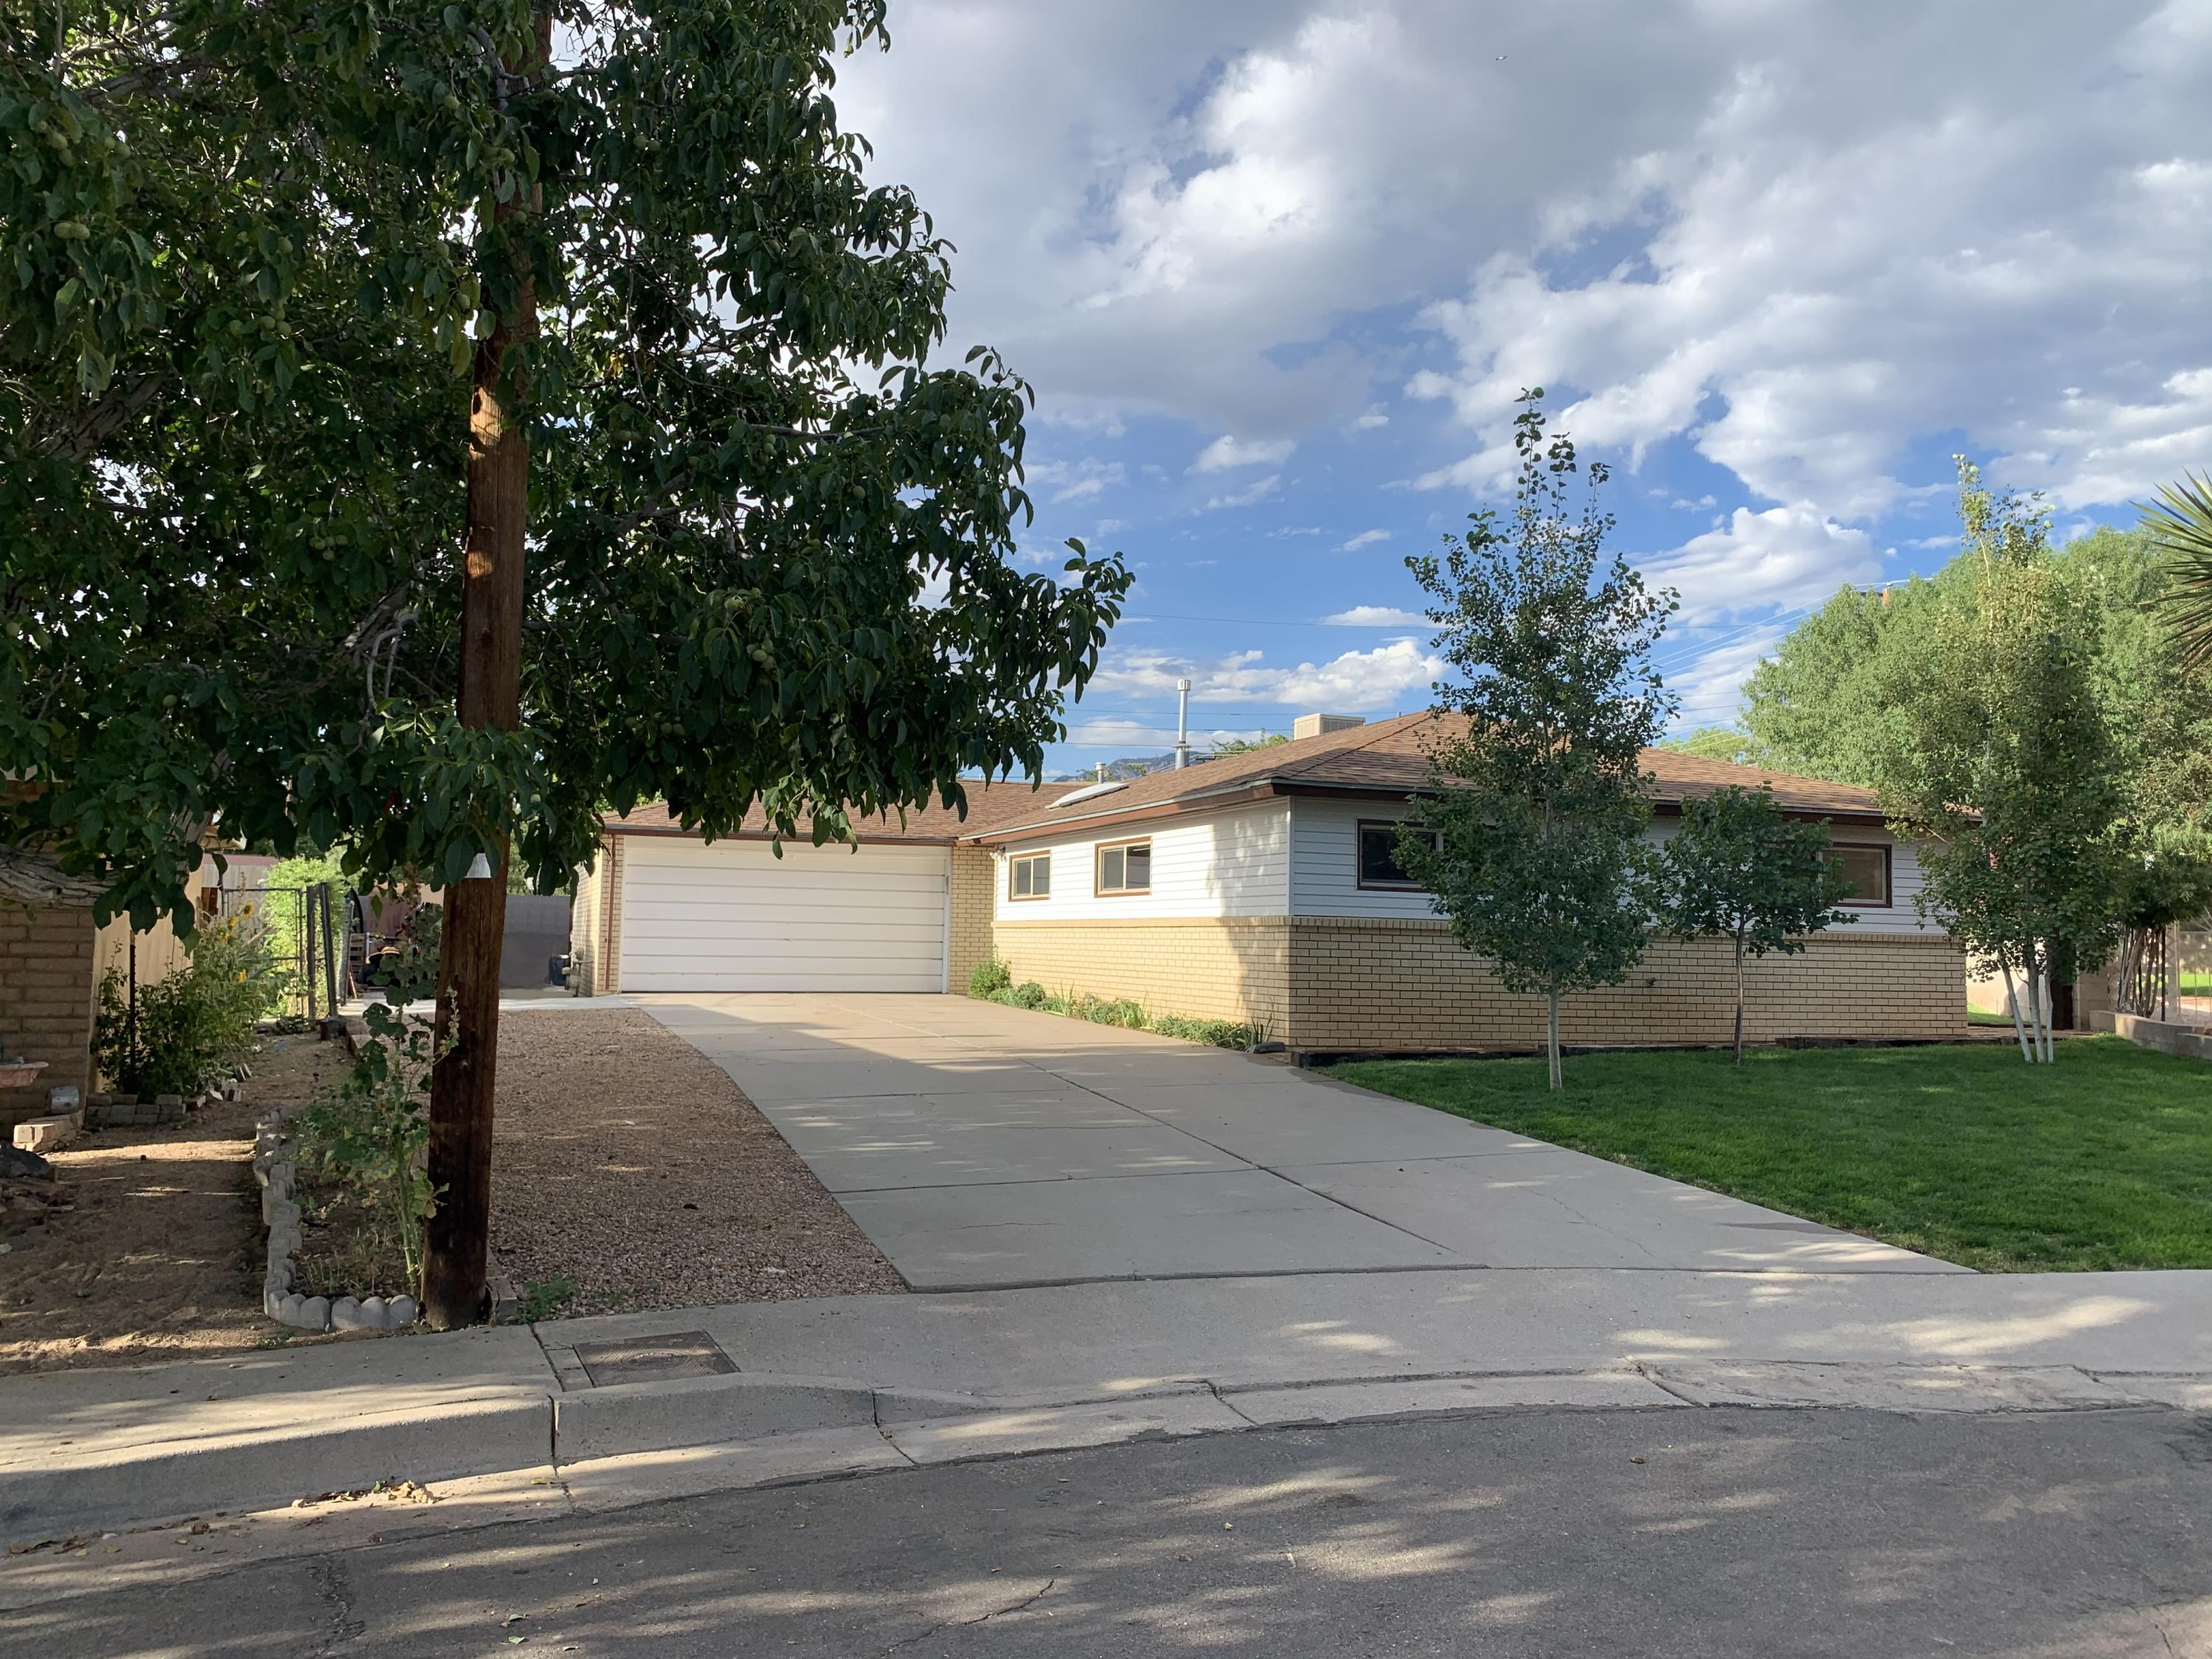 Four bedrooms on a cul-de-sac with fantastic location. Remolded and renovated, immaculate and well maintained, this home is BEAUTIFUL!Newer kitchen, windows & roof. Brick veneer. Views of Sandias. Covered outside porch.The gardens are a pride and joy with a wonderful vegetable patch and much more!